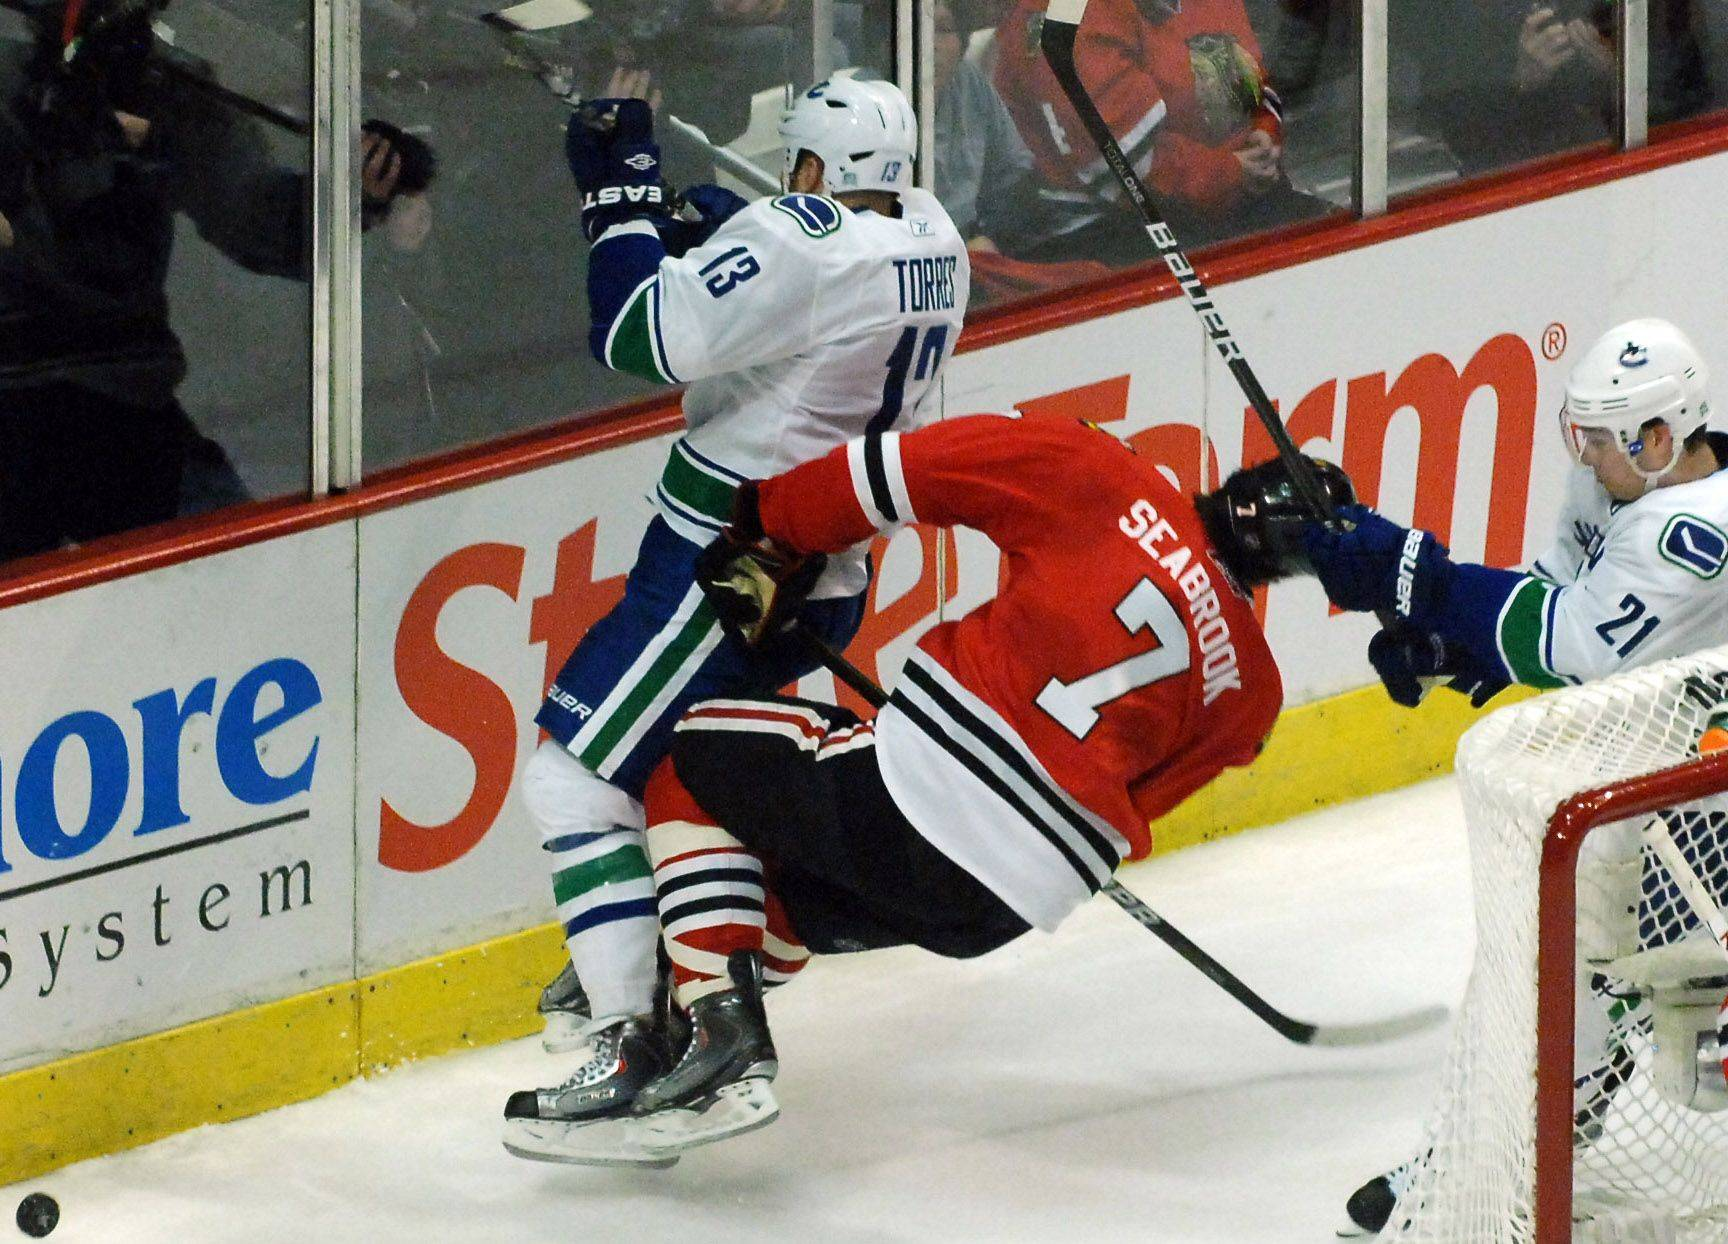 This hit on Brent Seabrook by Vancouver's Raffi Torres (13) earned the Canucks' left winger only a two-minute penalty in Game 3 of the NHL Western Conference quarterfinals Sunday, but it has knocked Seabrook out for Game 4 at the United Center tonight.